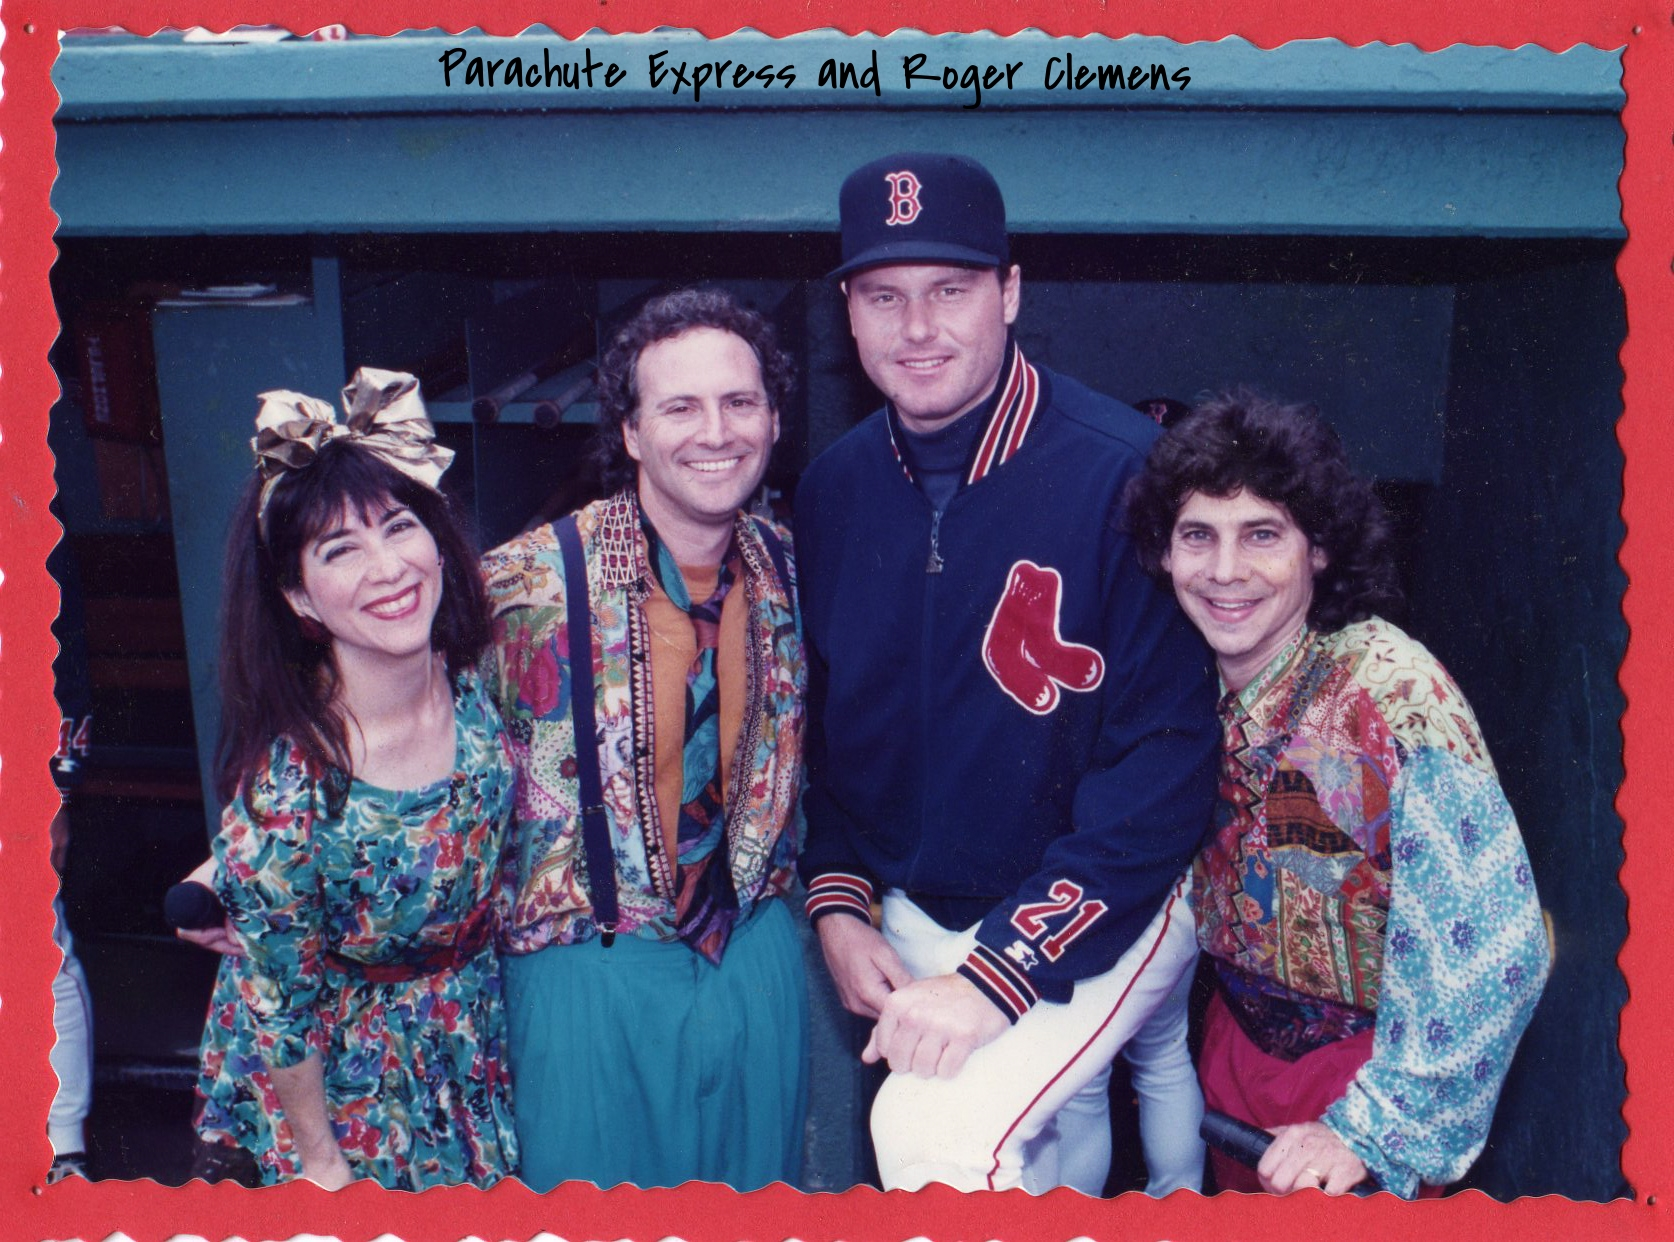 Parachute Express with Roger Clemens at Fenway Park